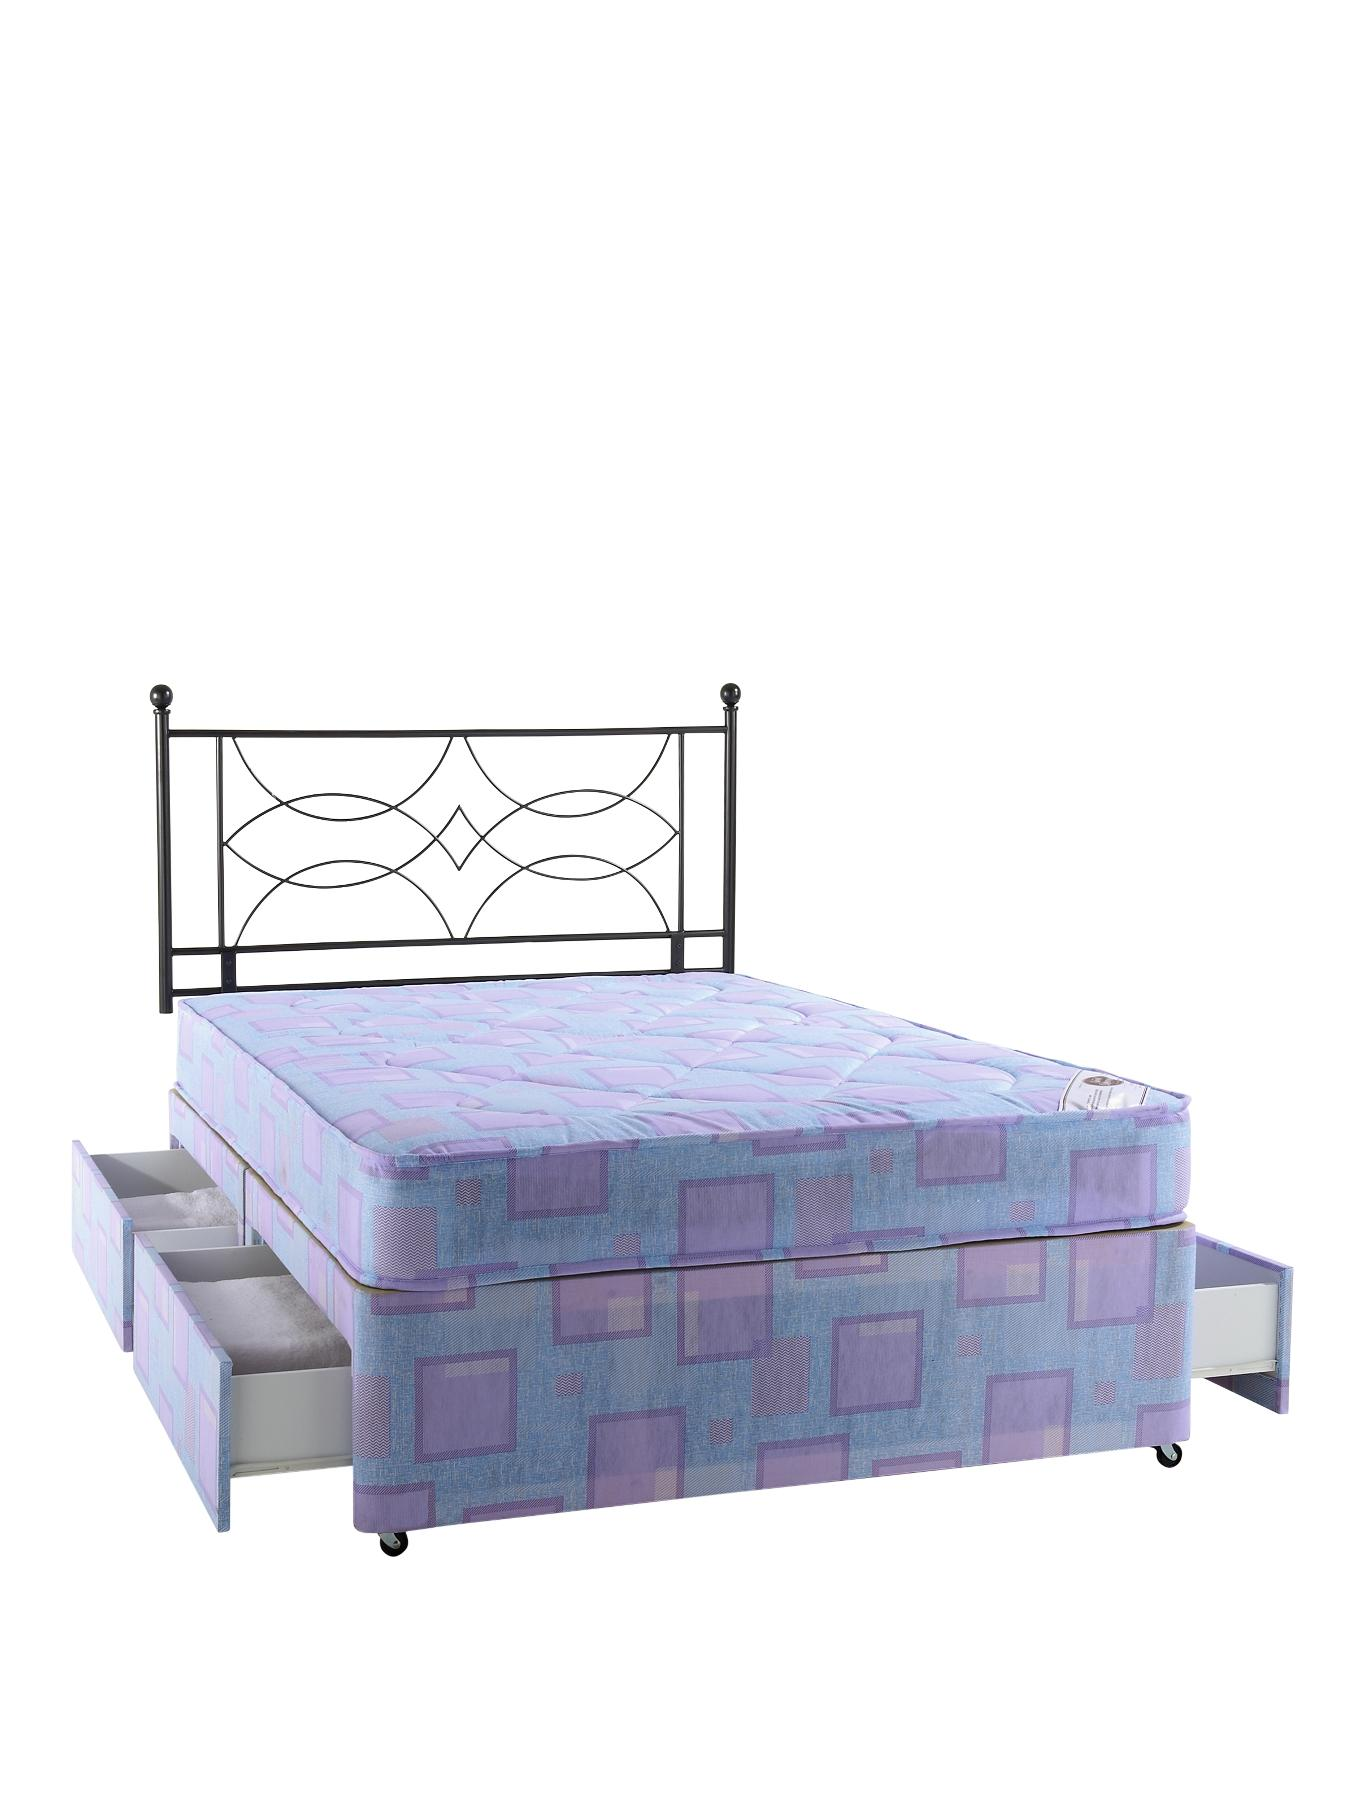 Jenson Divan Bed - Medium